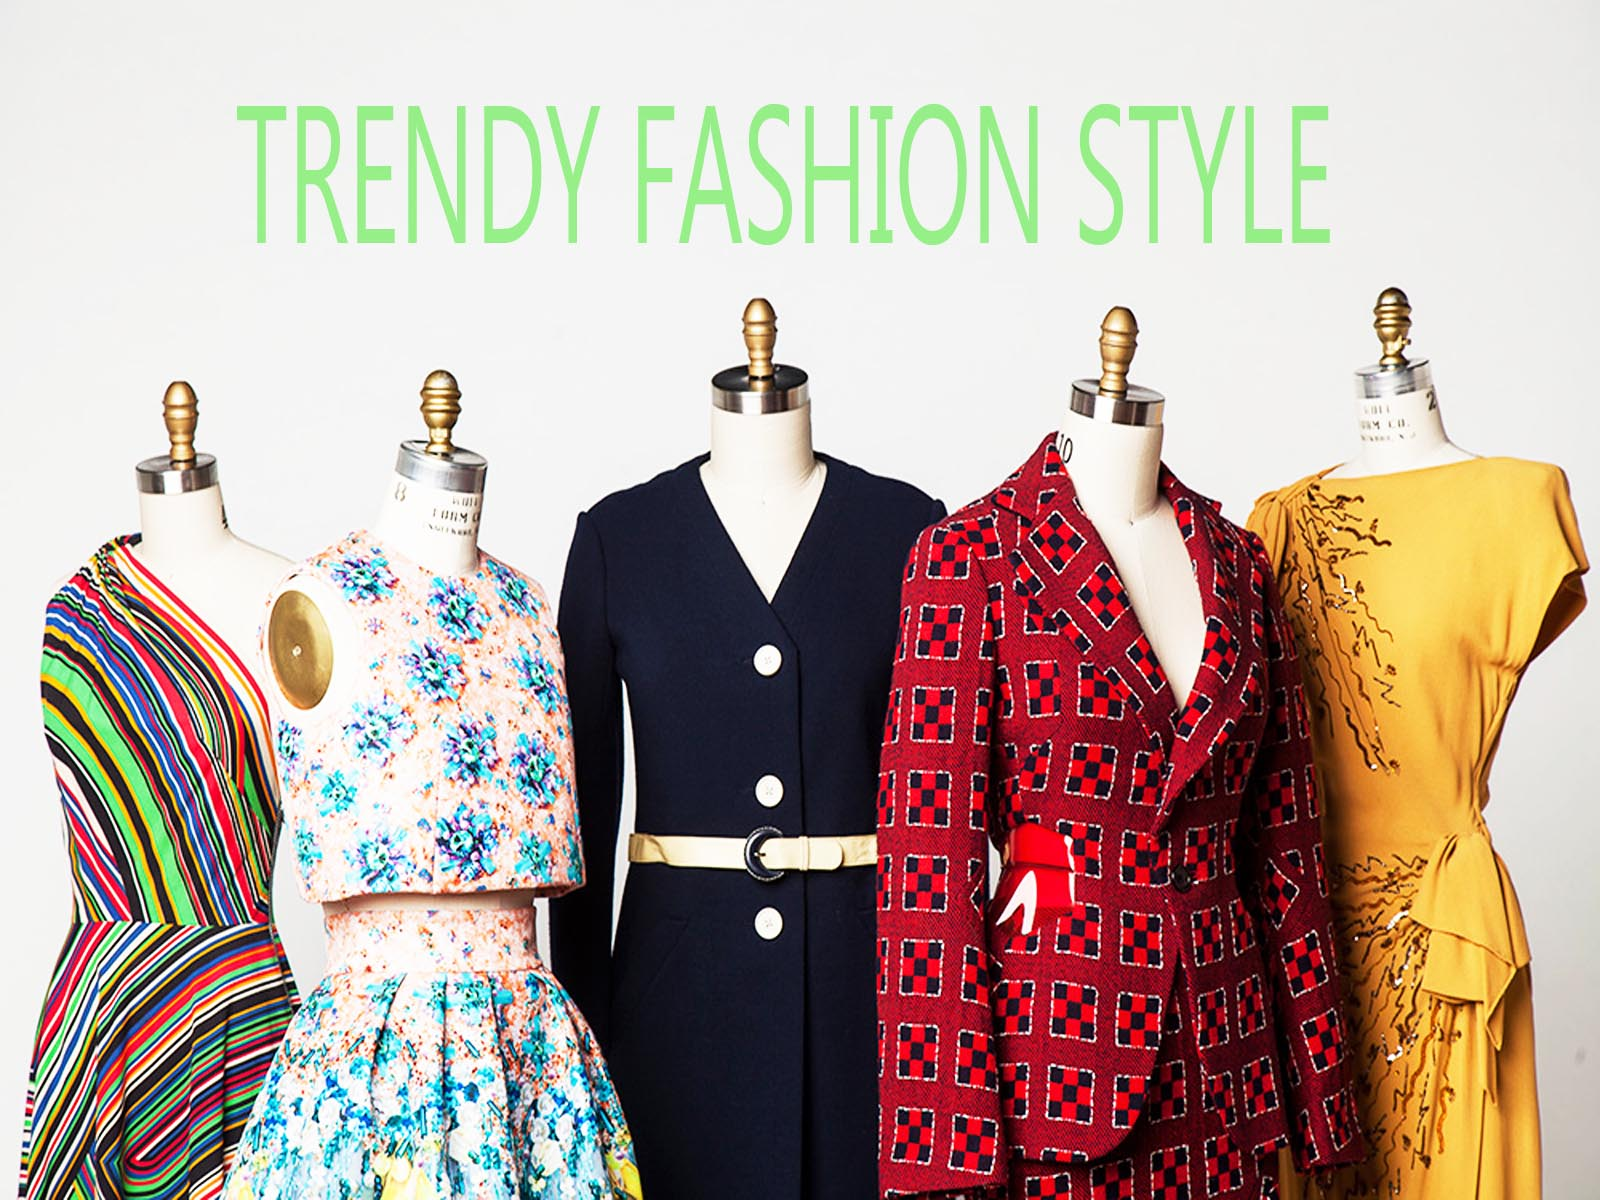 Fashion merchandising is a major where the experiences are just as important as the course work. Focusing on marketing, mathematics, and of course design, classes include: retail management, history of fashion, merchandising mathematics, advertising, psychology, design, and textiles.